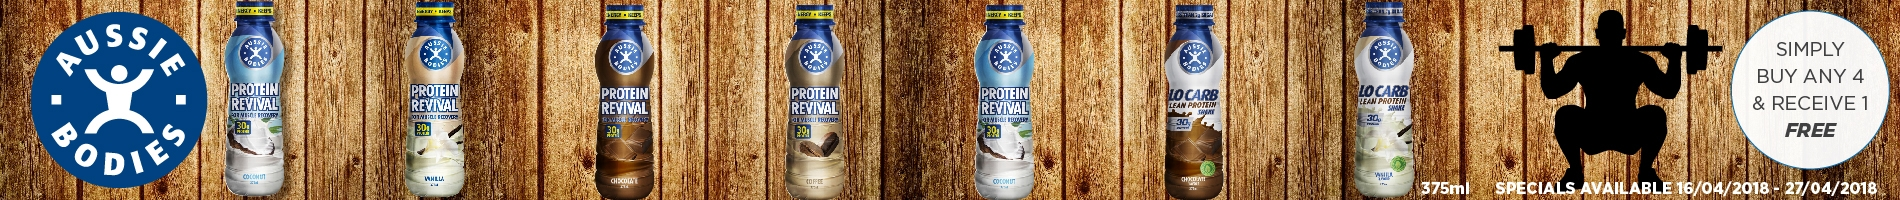 Click to Shop Protein Revival